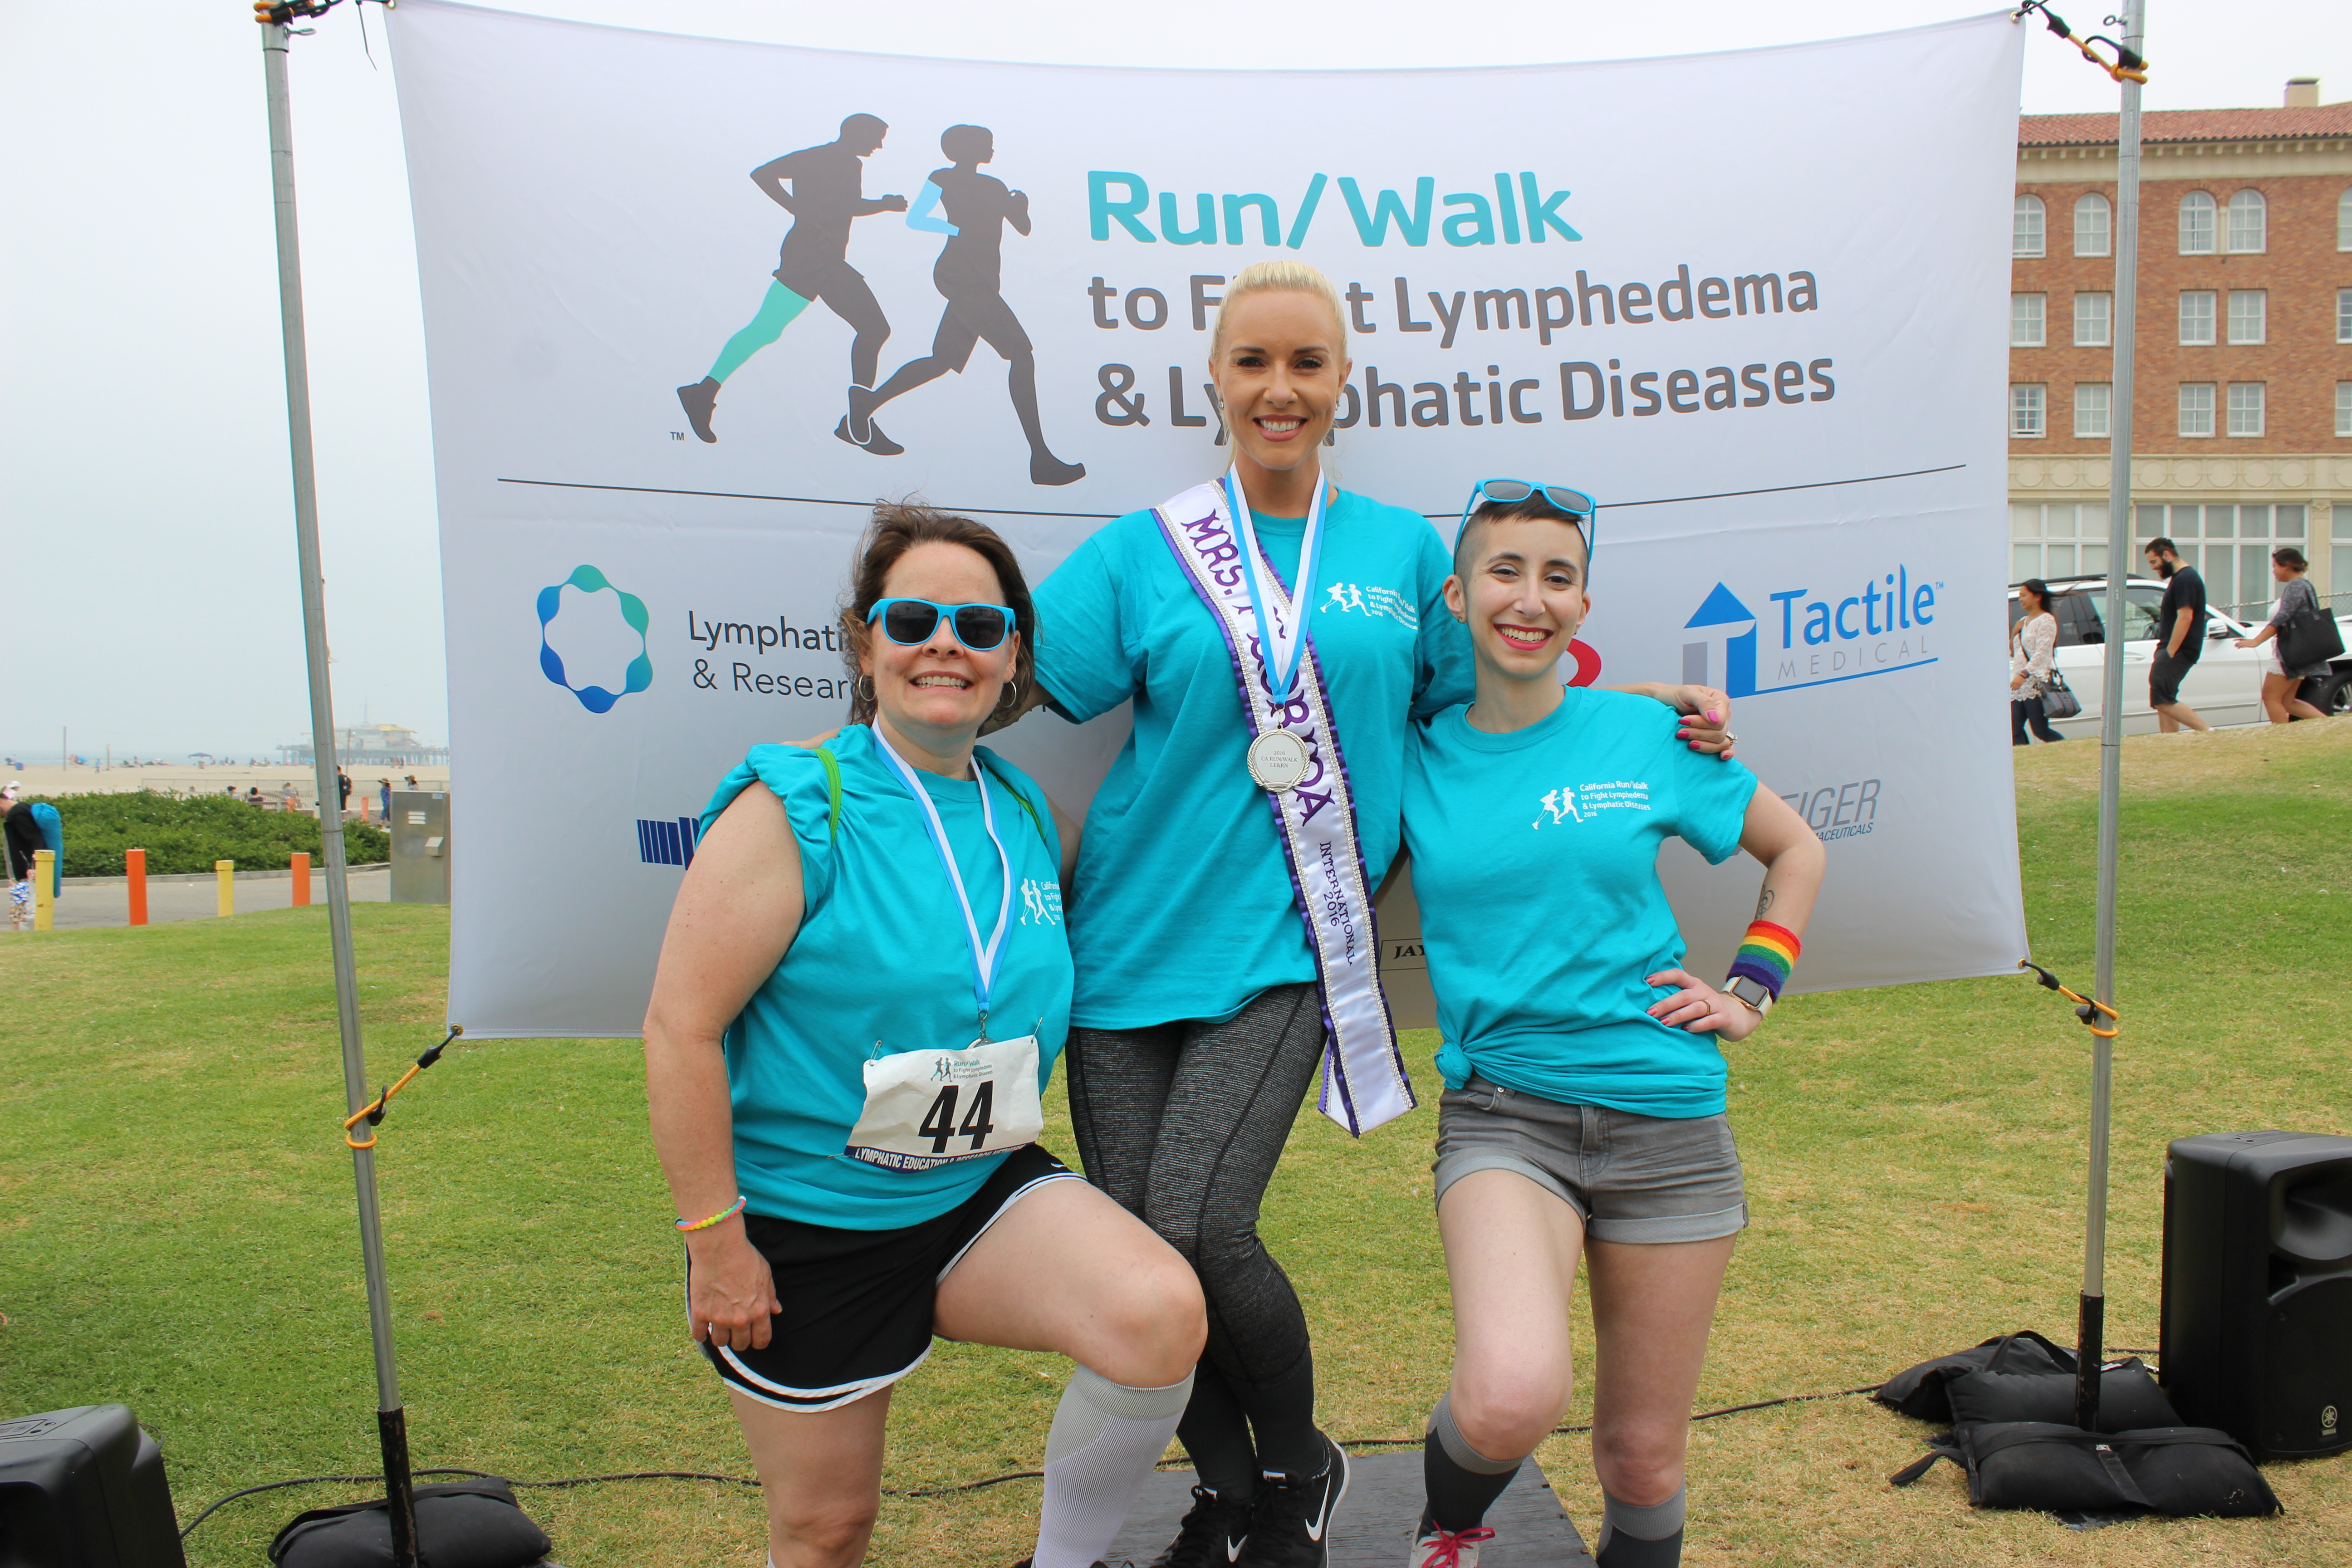 Maureen, Amy & Robin at CA Run/Walk